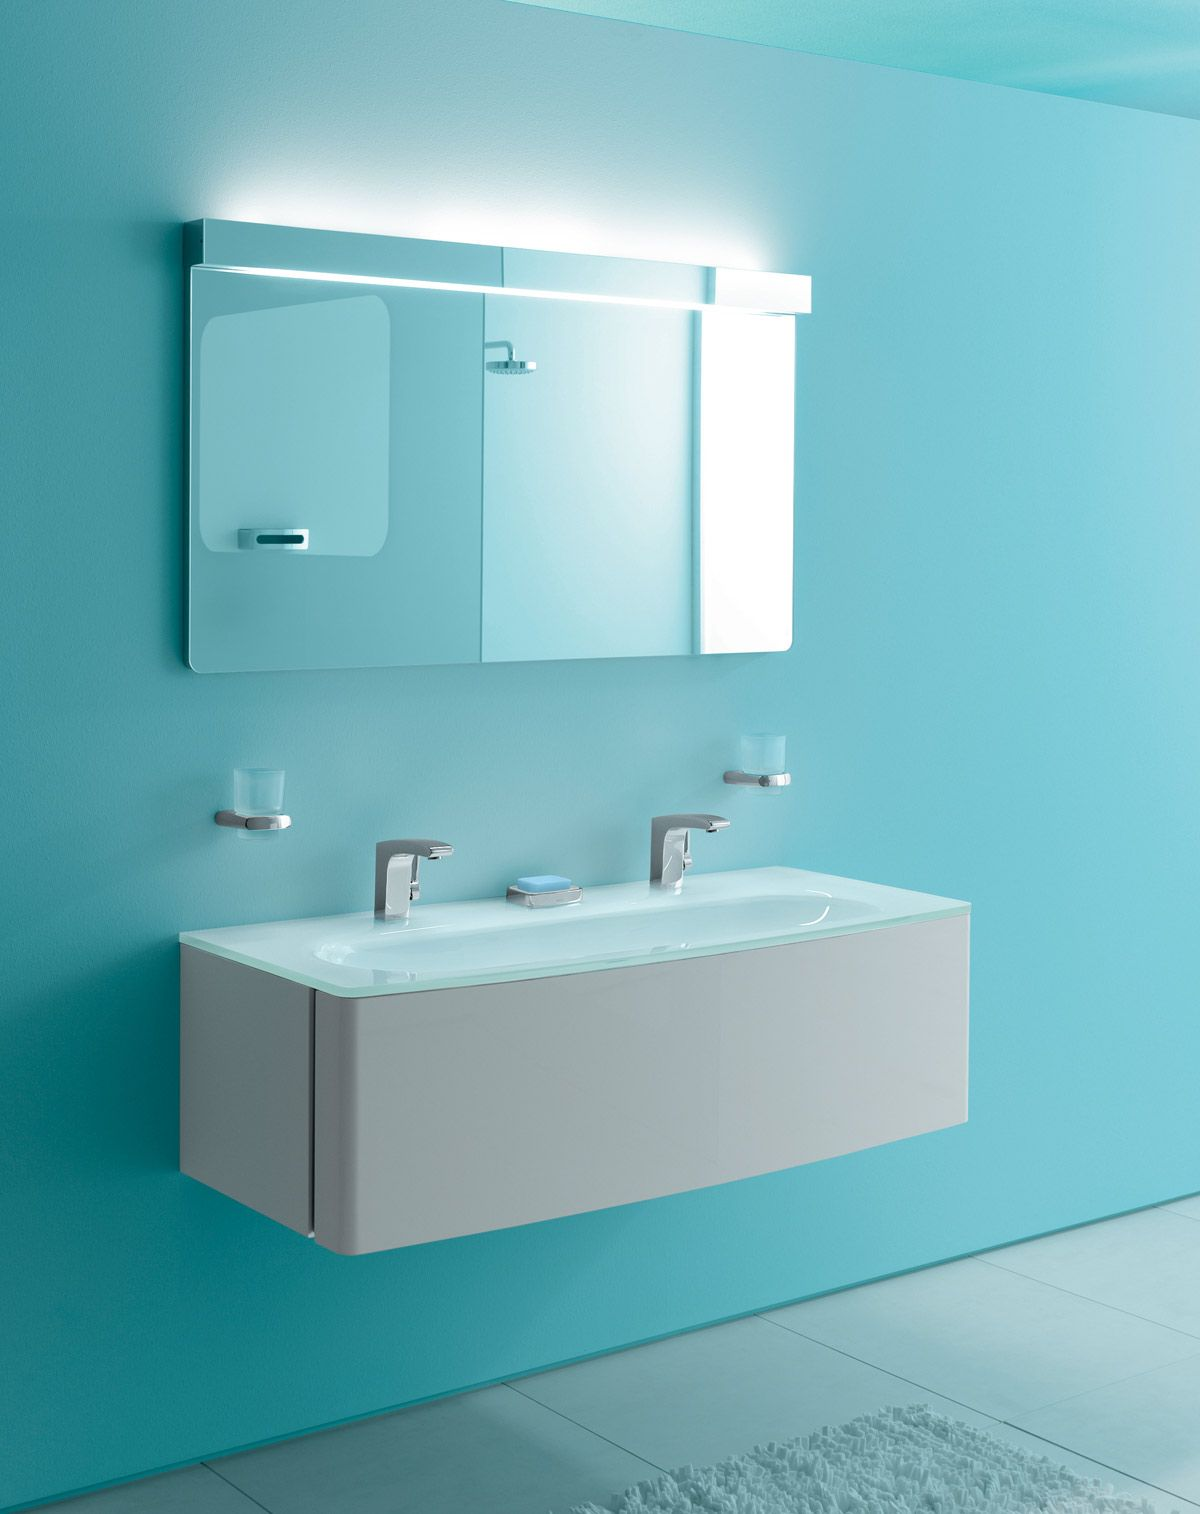 keuco elegance furniture range - Bathroom Cabinets Keuco